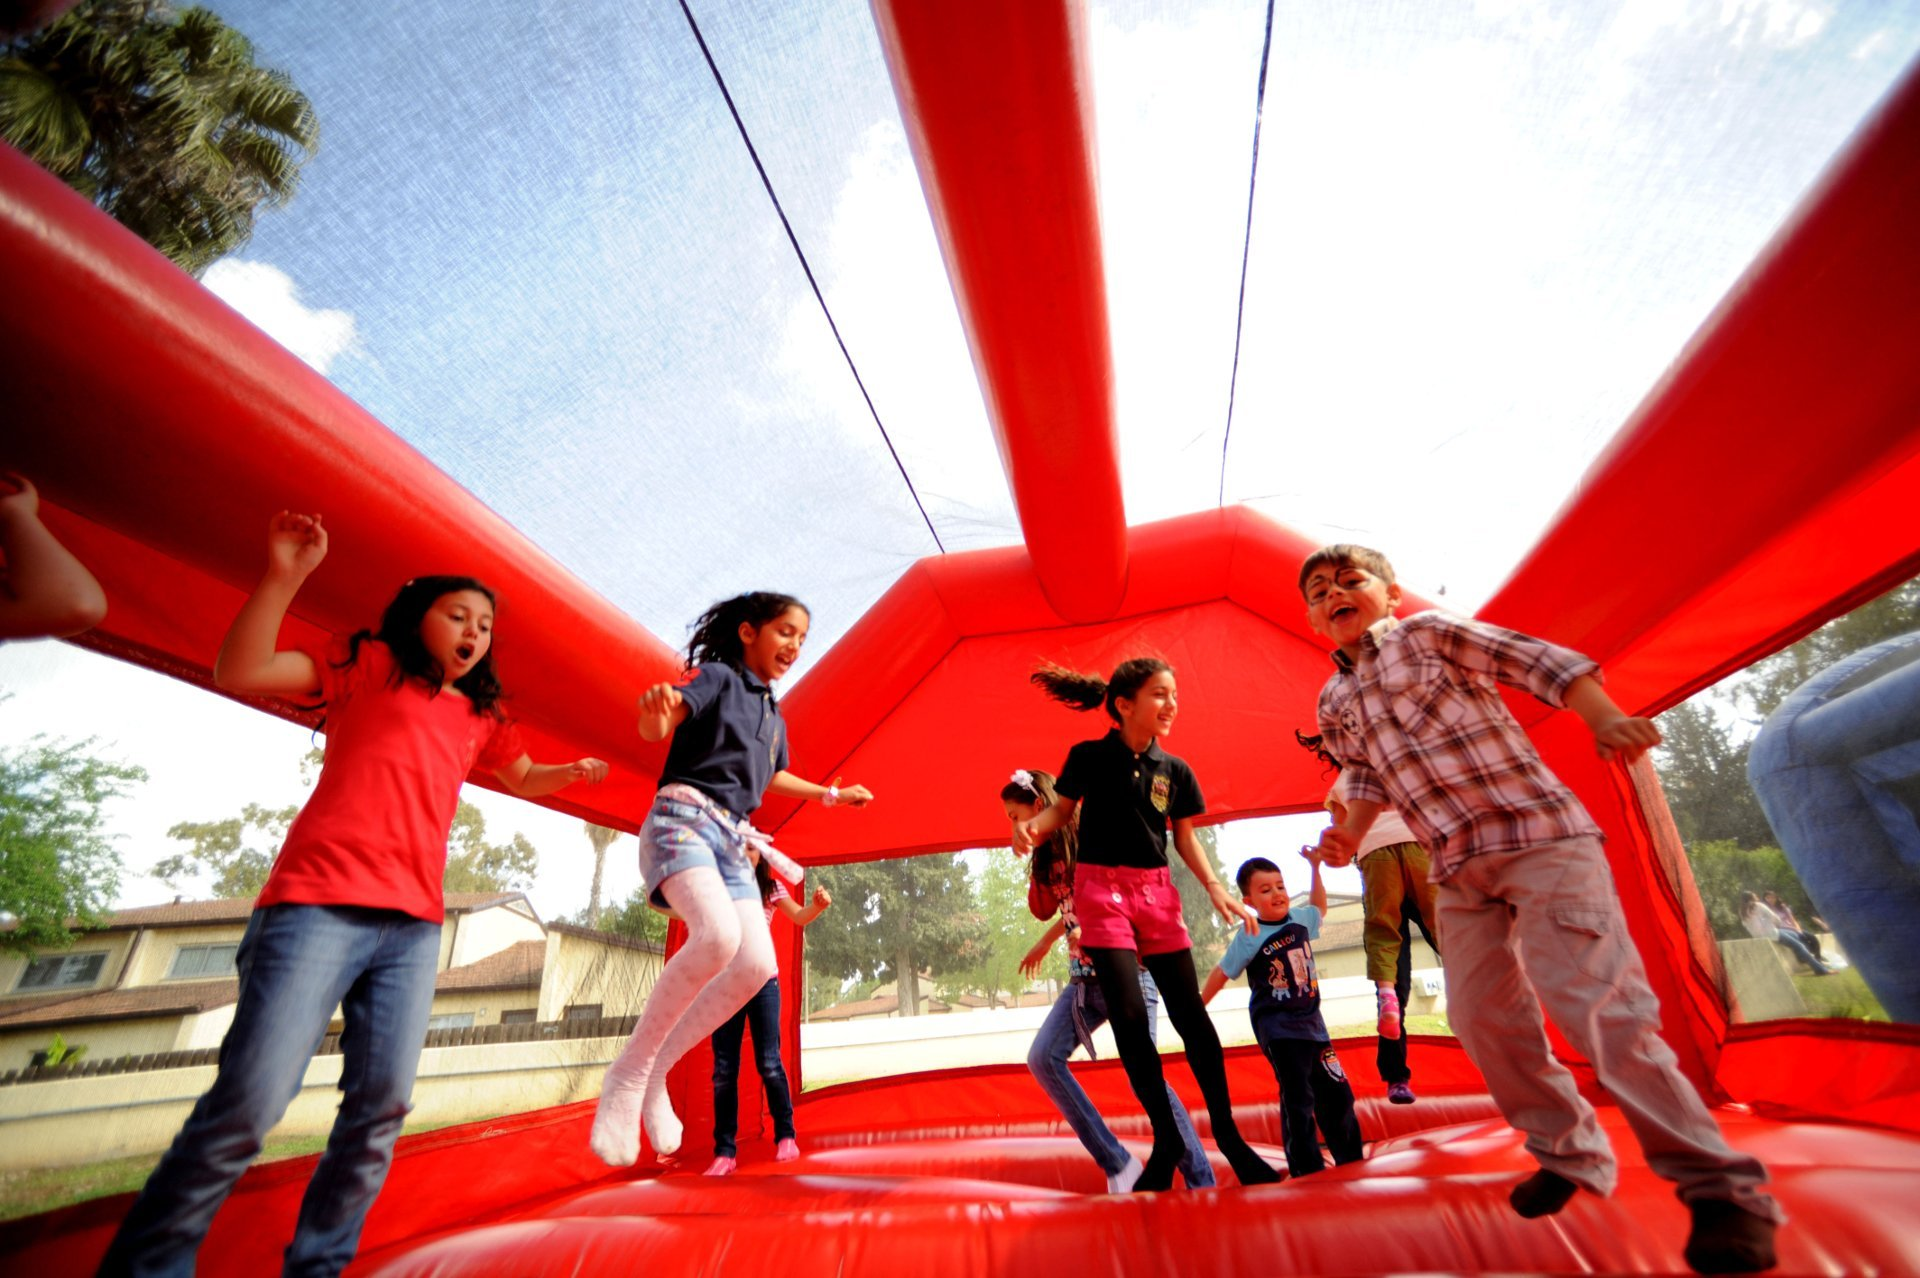 Red bounce house